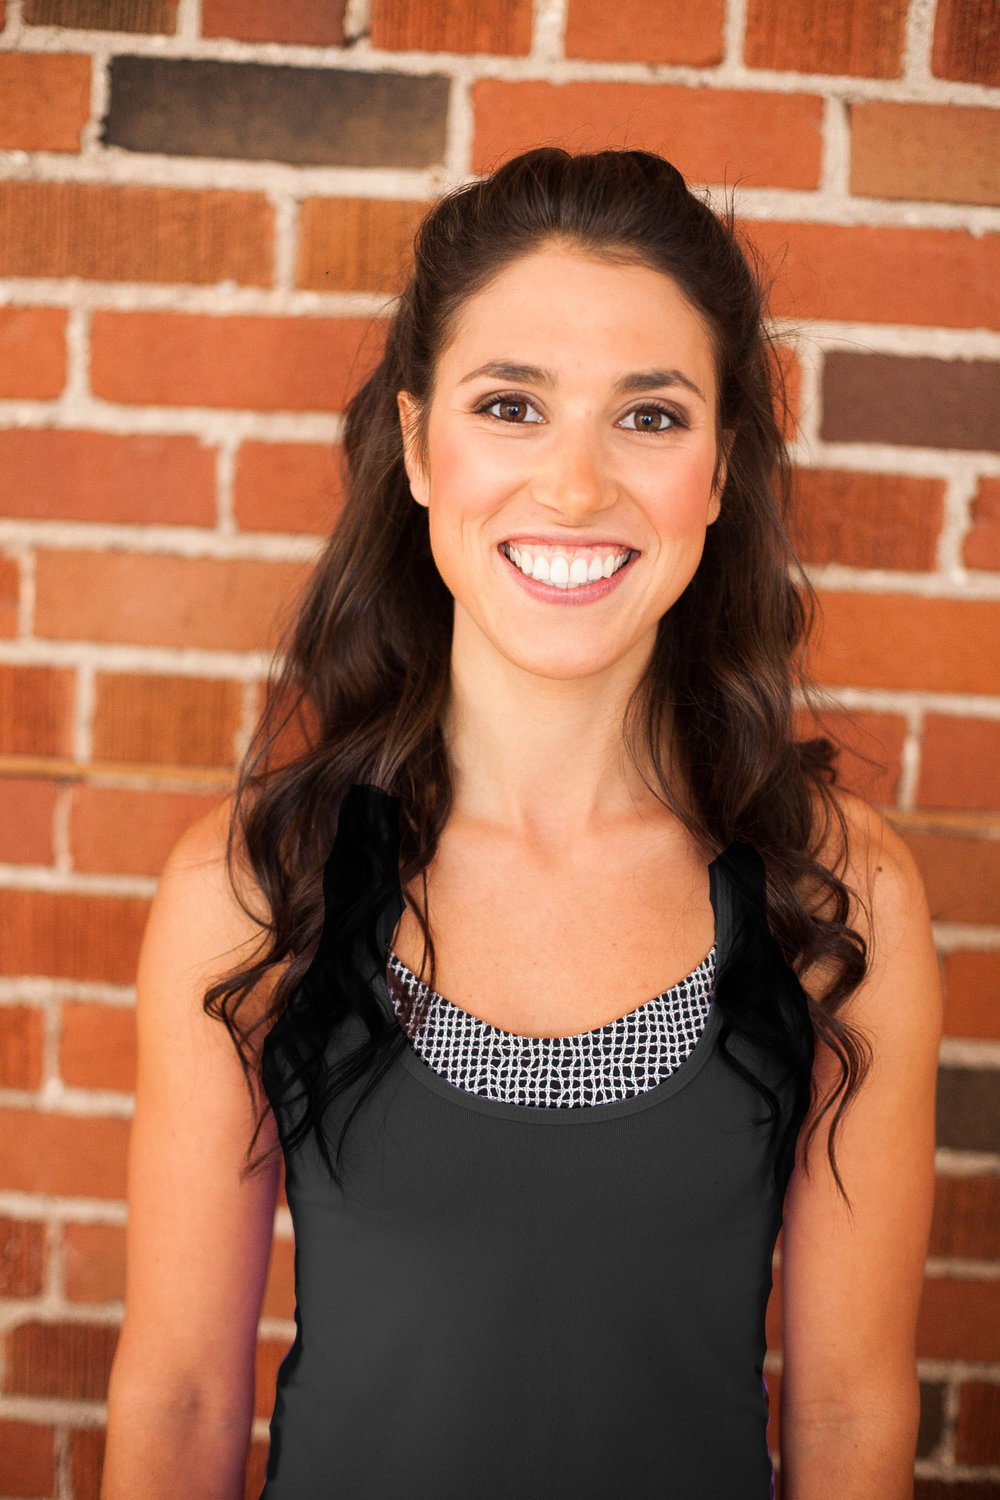 Jamie is your girl if you're in need of some uplifting positivity in your life; her excitable energy and enthusiastic spirit are contagious.  You will find her and her infectious smile cheering on her students in all styles of classes offered at YOGAthletix.